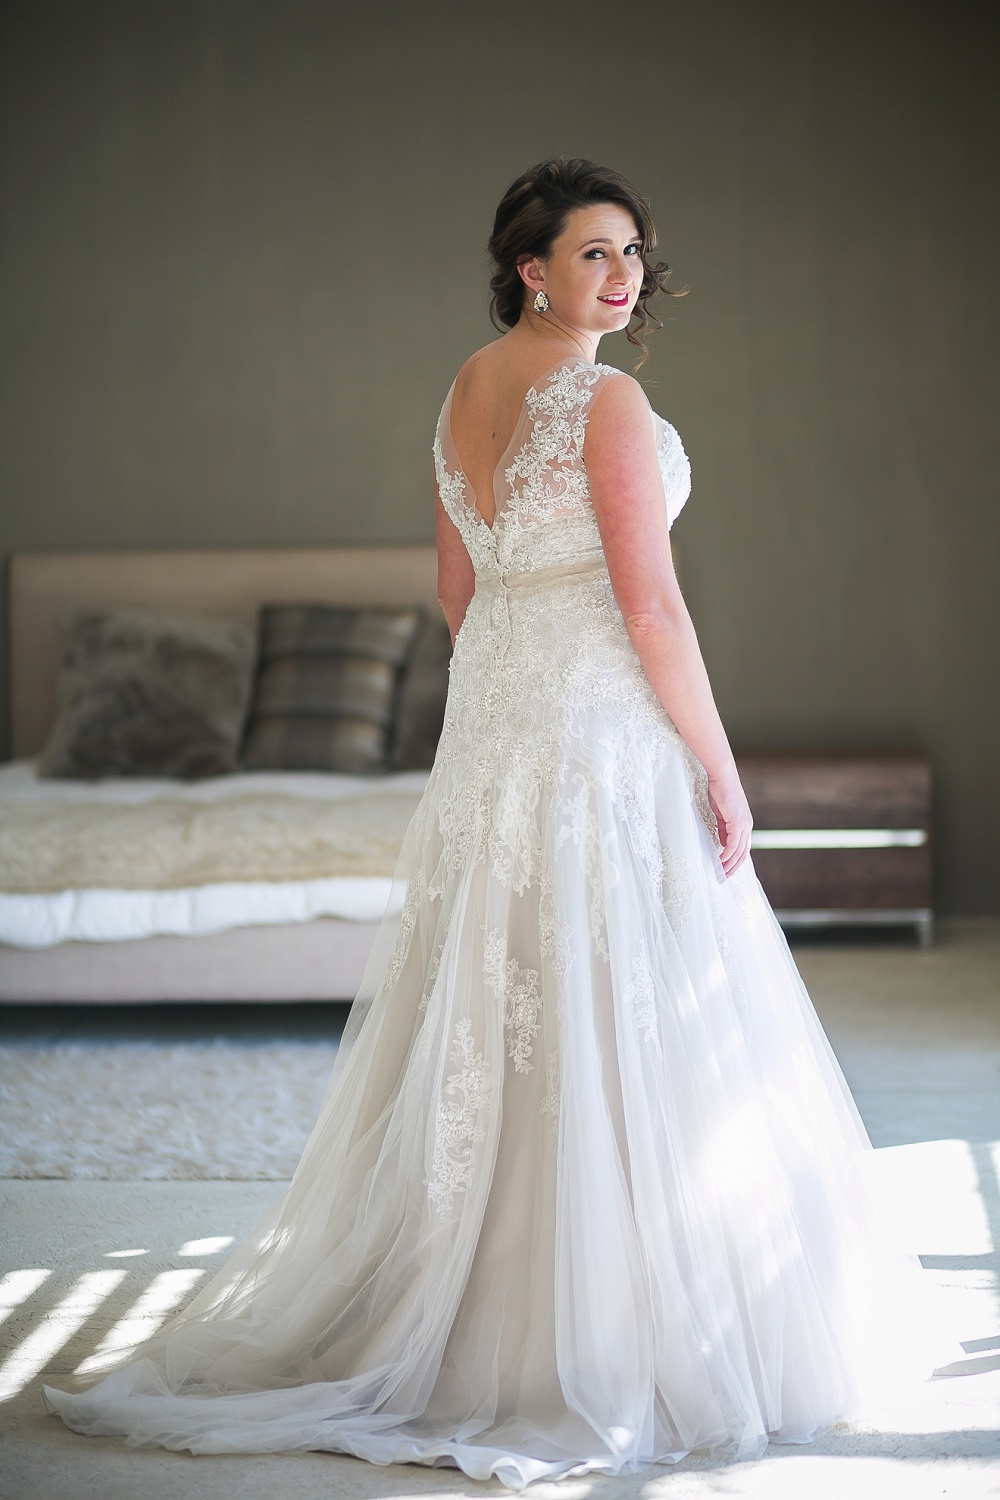 Lace Elizabeth Stockenstrom Wedding Dress | Credit: Karina Conradie